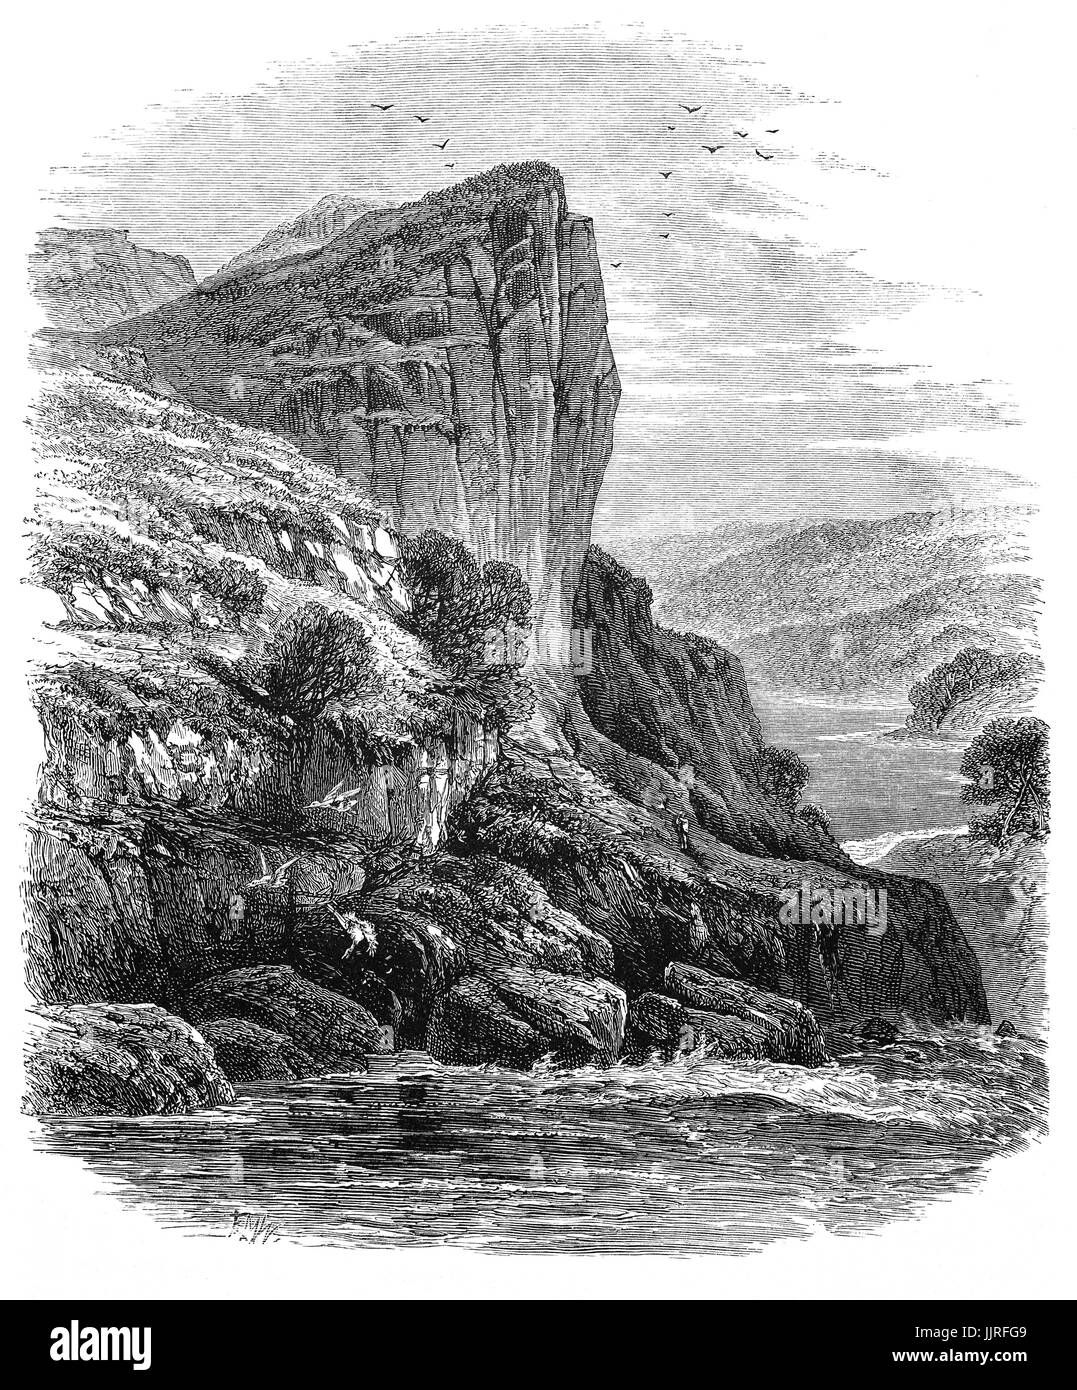 1870: Shepherd's Crag on the River Llugwy,  a tributary of the River Conwy, Conwy County Borough, Clwyd, North - Stock Image